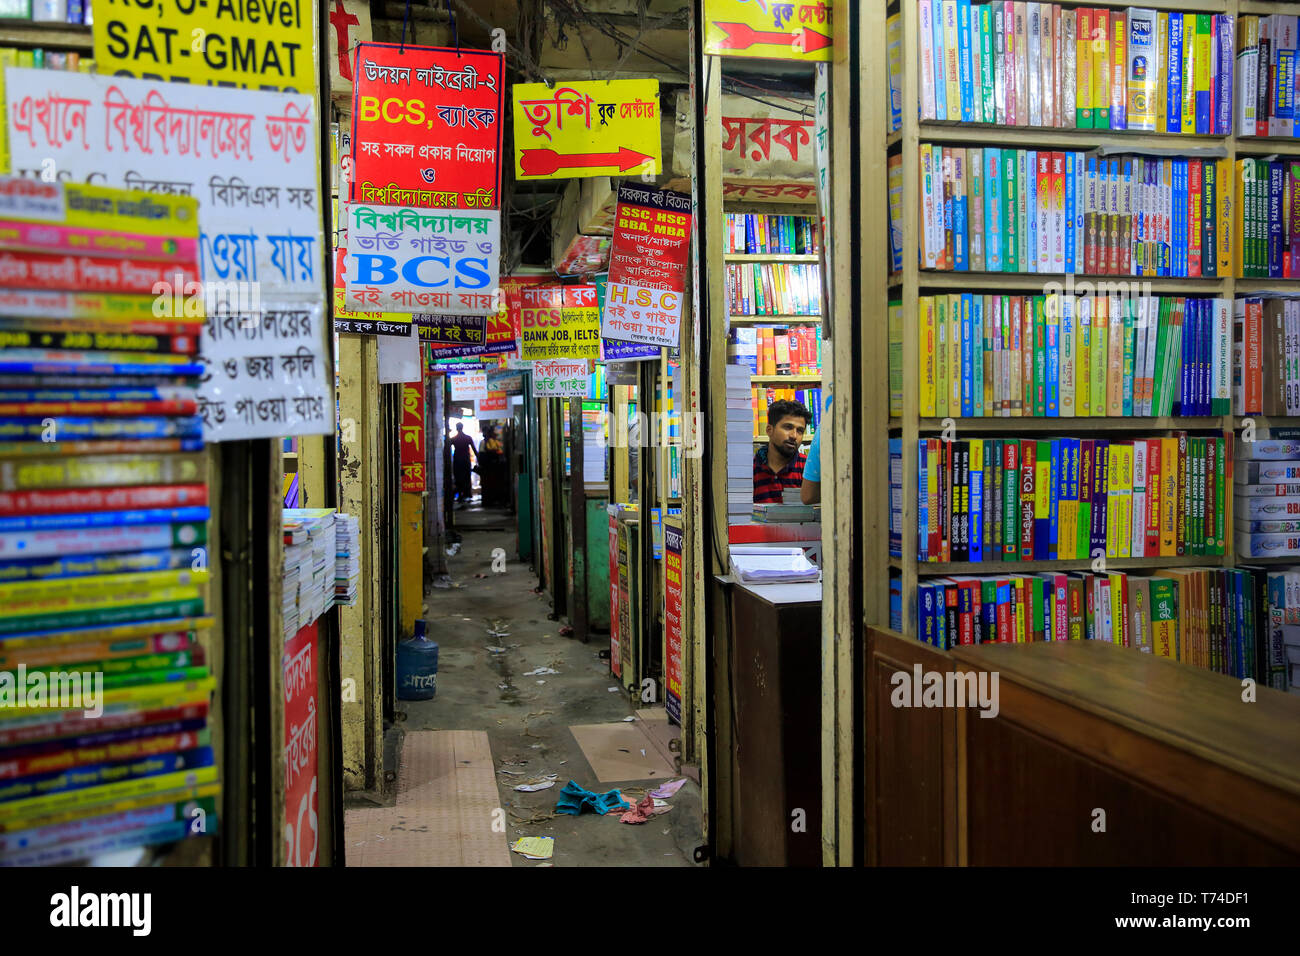 Bookshops at Nilkhet Book Market in Dhaka, Bangladesh - Stock Image